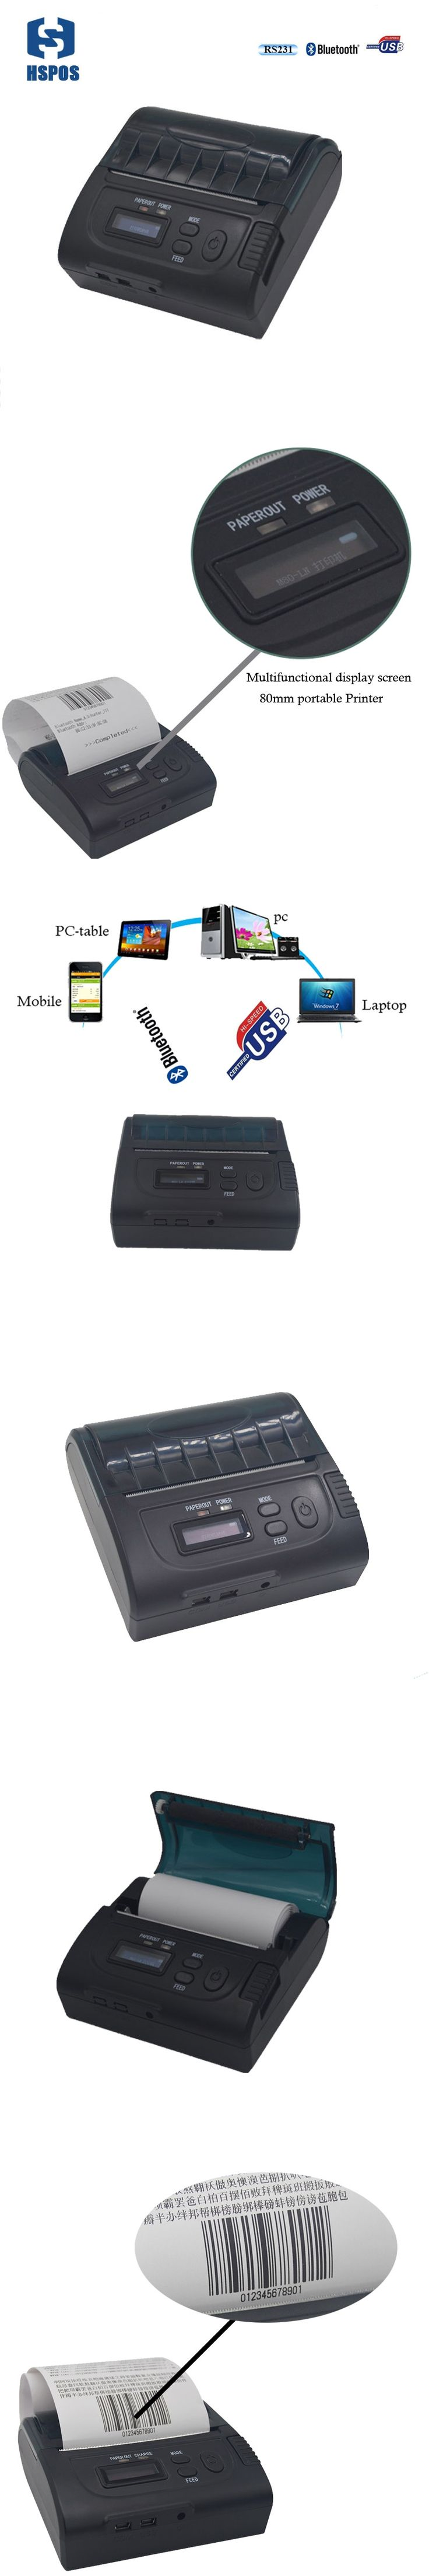 Mini 80mm rechargeable bluetooth thermal receipt printer smartphone android and ios bill printer machine usb serial port HS-85AI